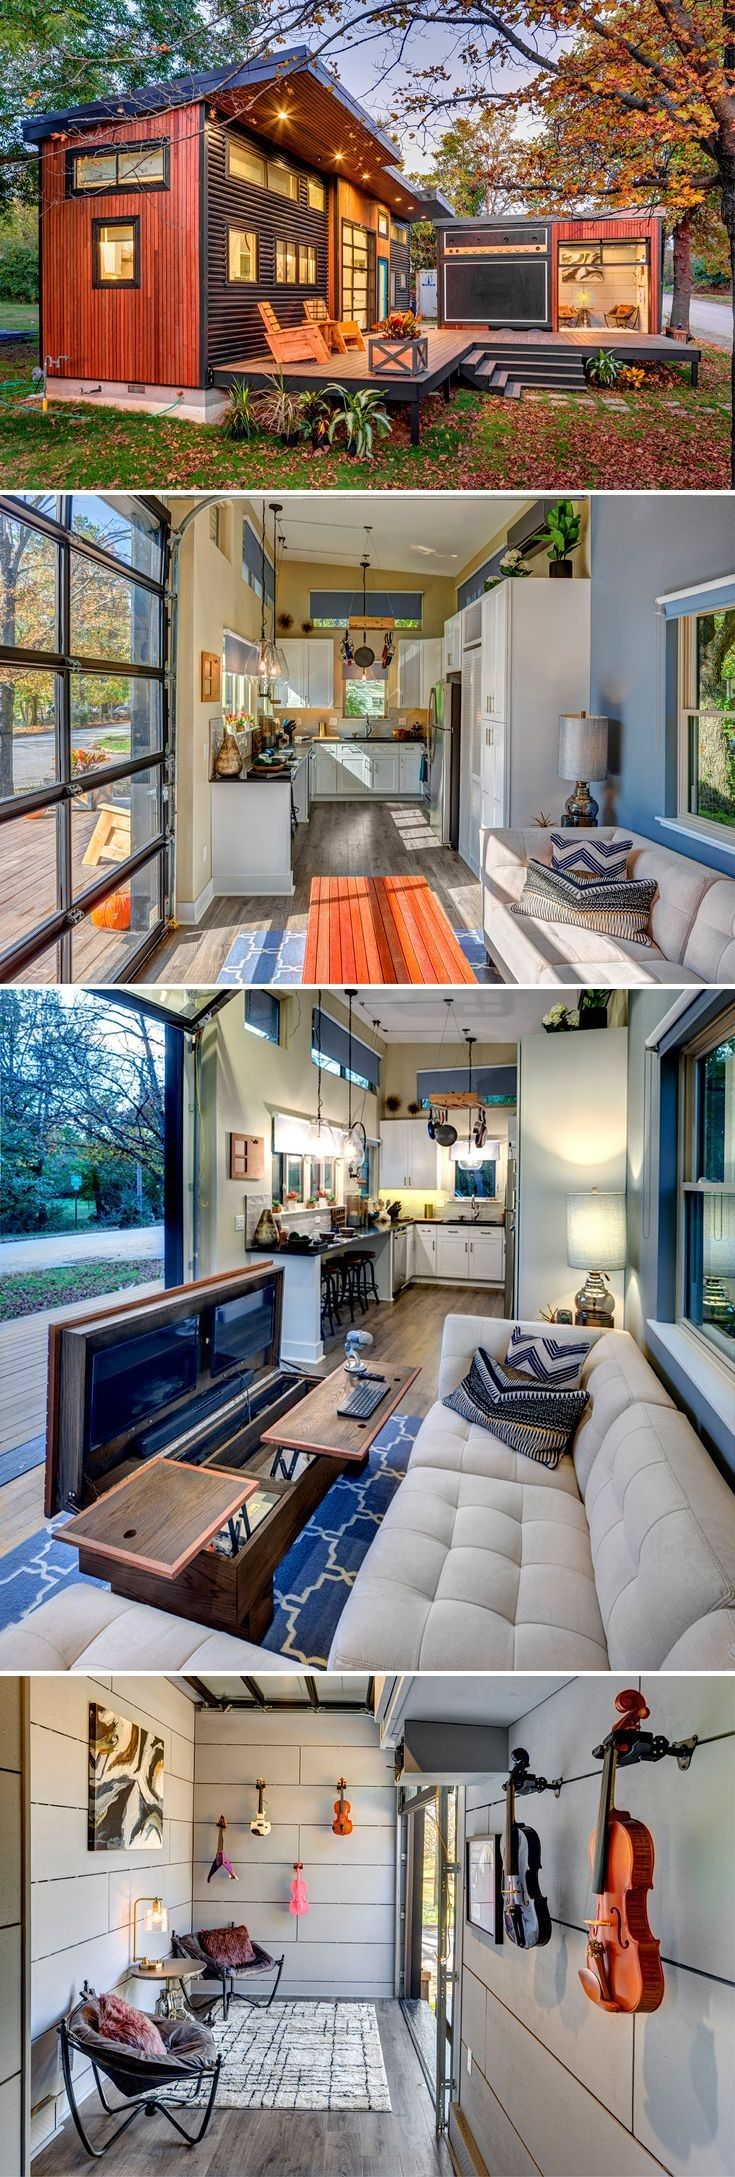 Container House - The Amplified Tiny House is 400-square-feet and built on a foundation, and the 160-square-foot mobile recording studio was built on a tiny house trailer. - Who Else Wants Simple Step-By-Step Plans To Design And Build A Container Home From Scratch?